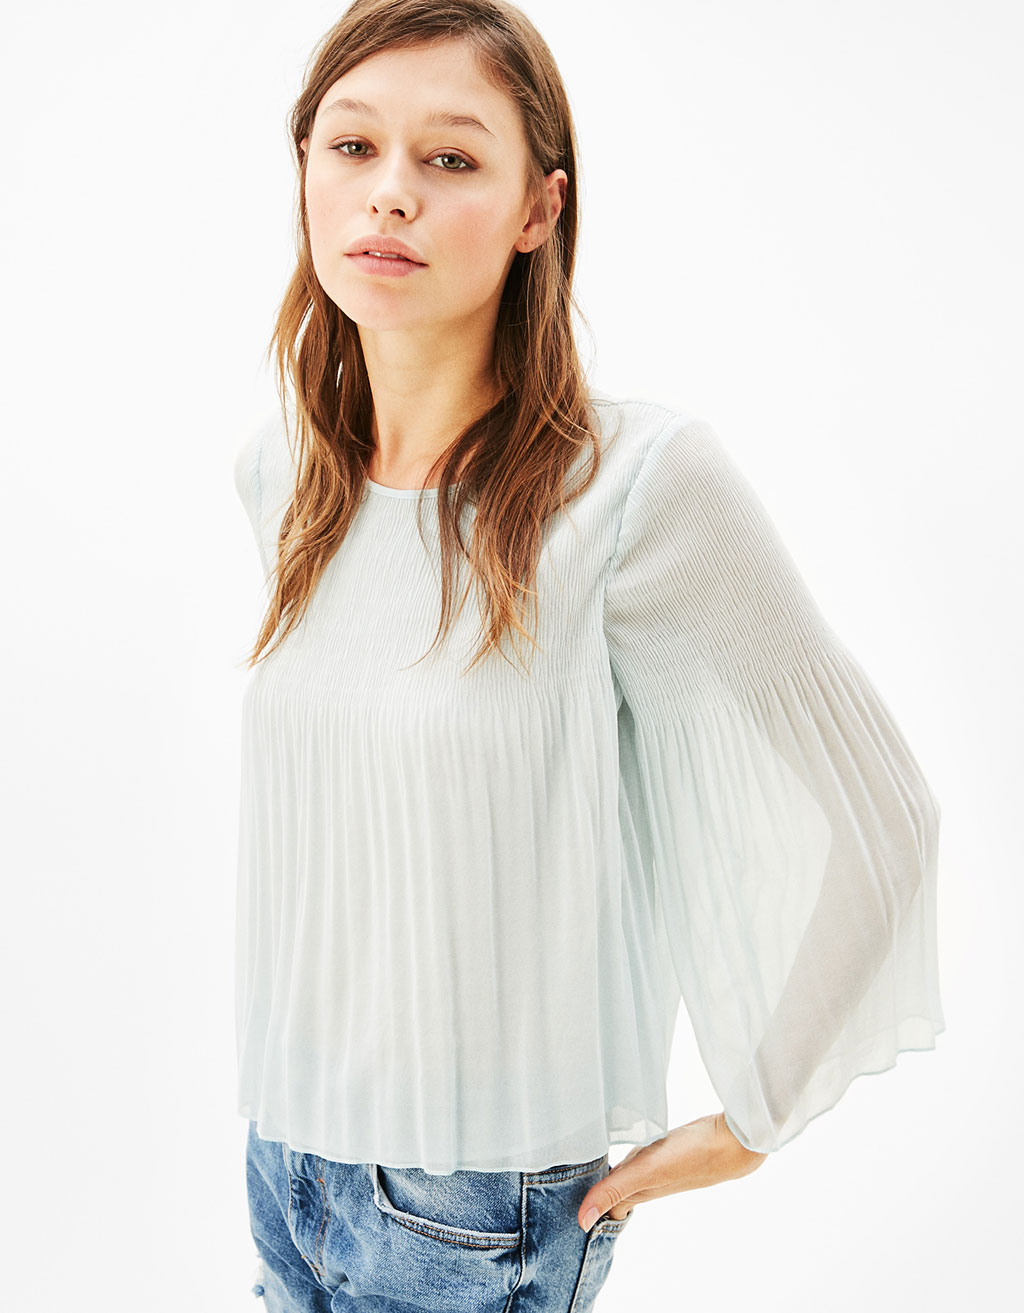 Fine pleats blouse with flared sleeves